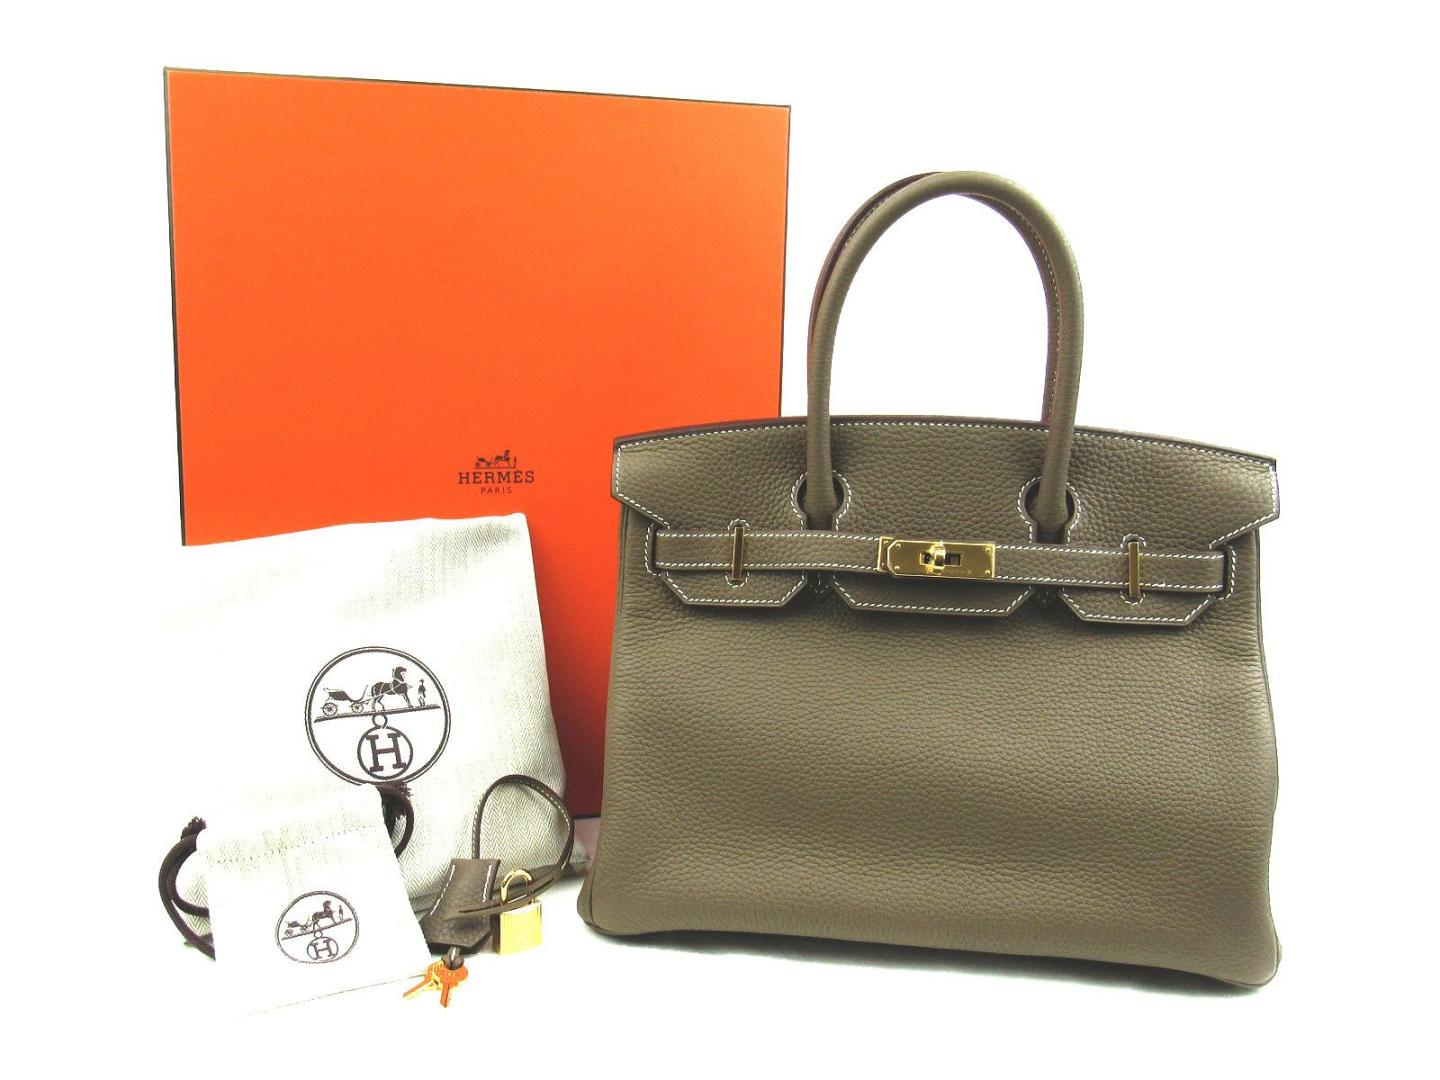 BRANDOFF  Authentic HERMES Birkin 30 Hand tote Bag Clemence leather Etoupe  Gray GHW  c52ed4c17ff6f